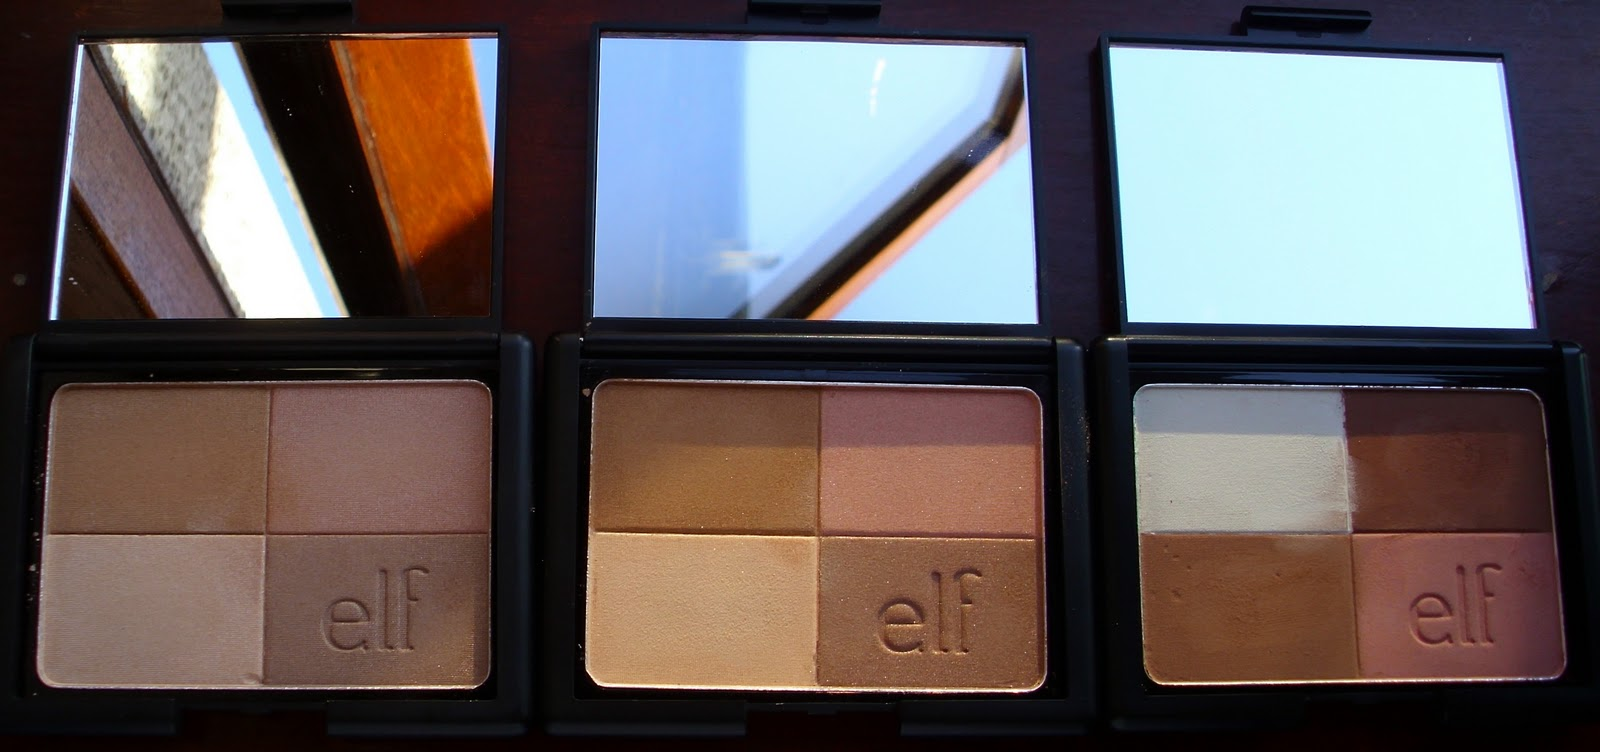 Ninas bargain beauty elf studio bronzer review elf says create a healthy looking glow all year round the sheer soft powders provide the perfect hue of color blend all 4 colors together to achieve a ccuart Choice Image